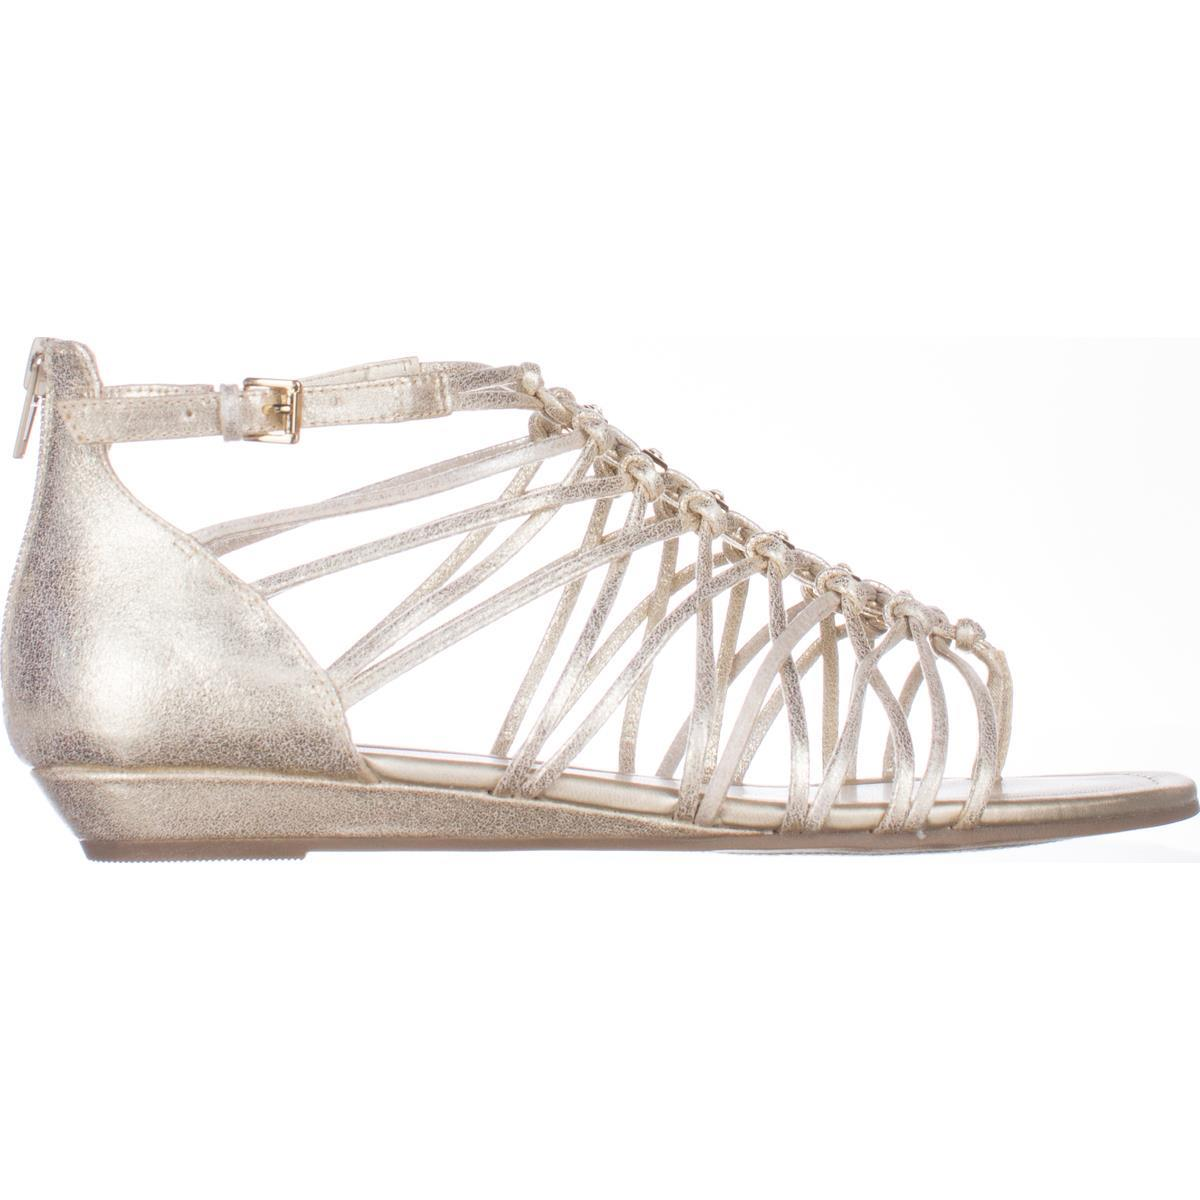 25bcc0e56a67a Guess - Womens G by GUESS Jonsie Flat Strappy Sandals - Gold - Walmart.com